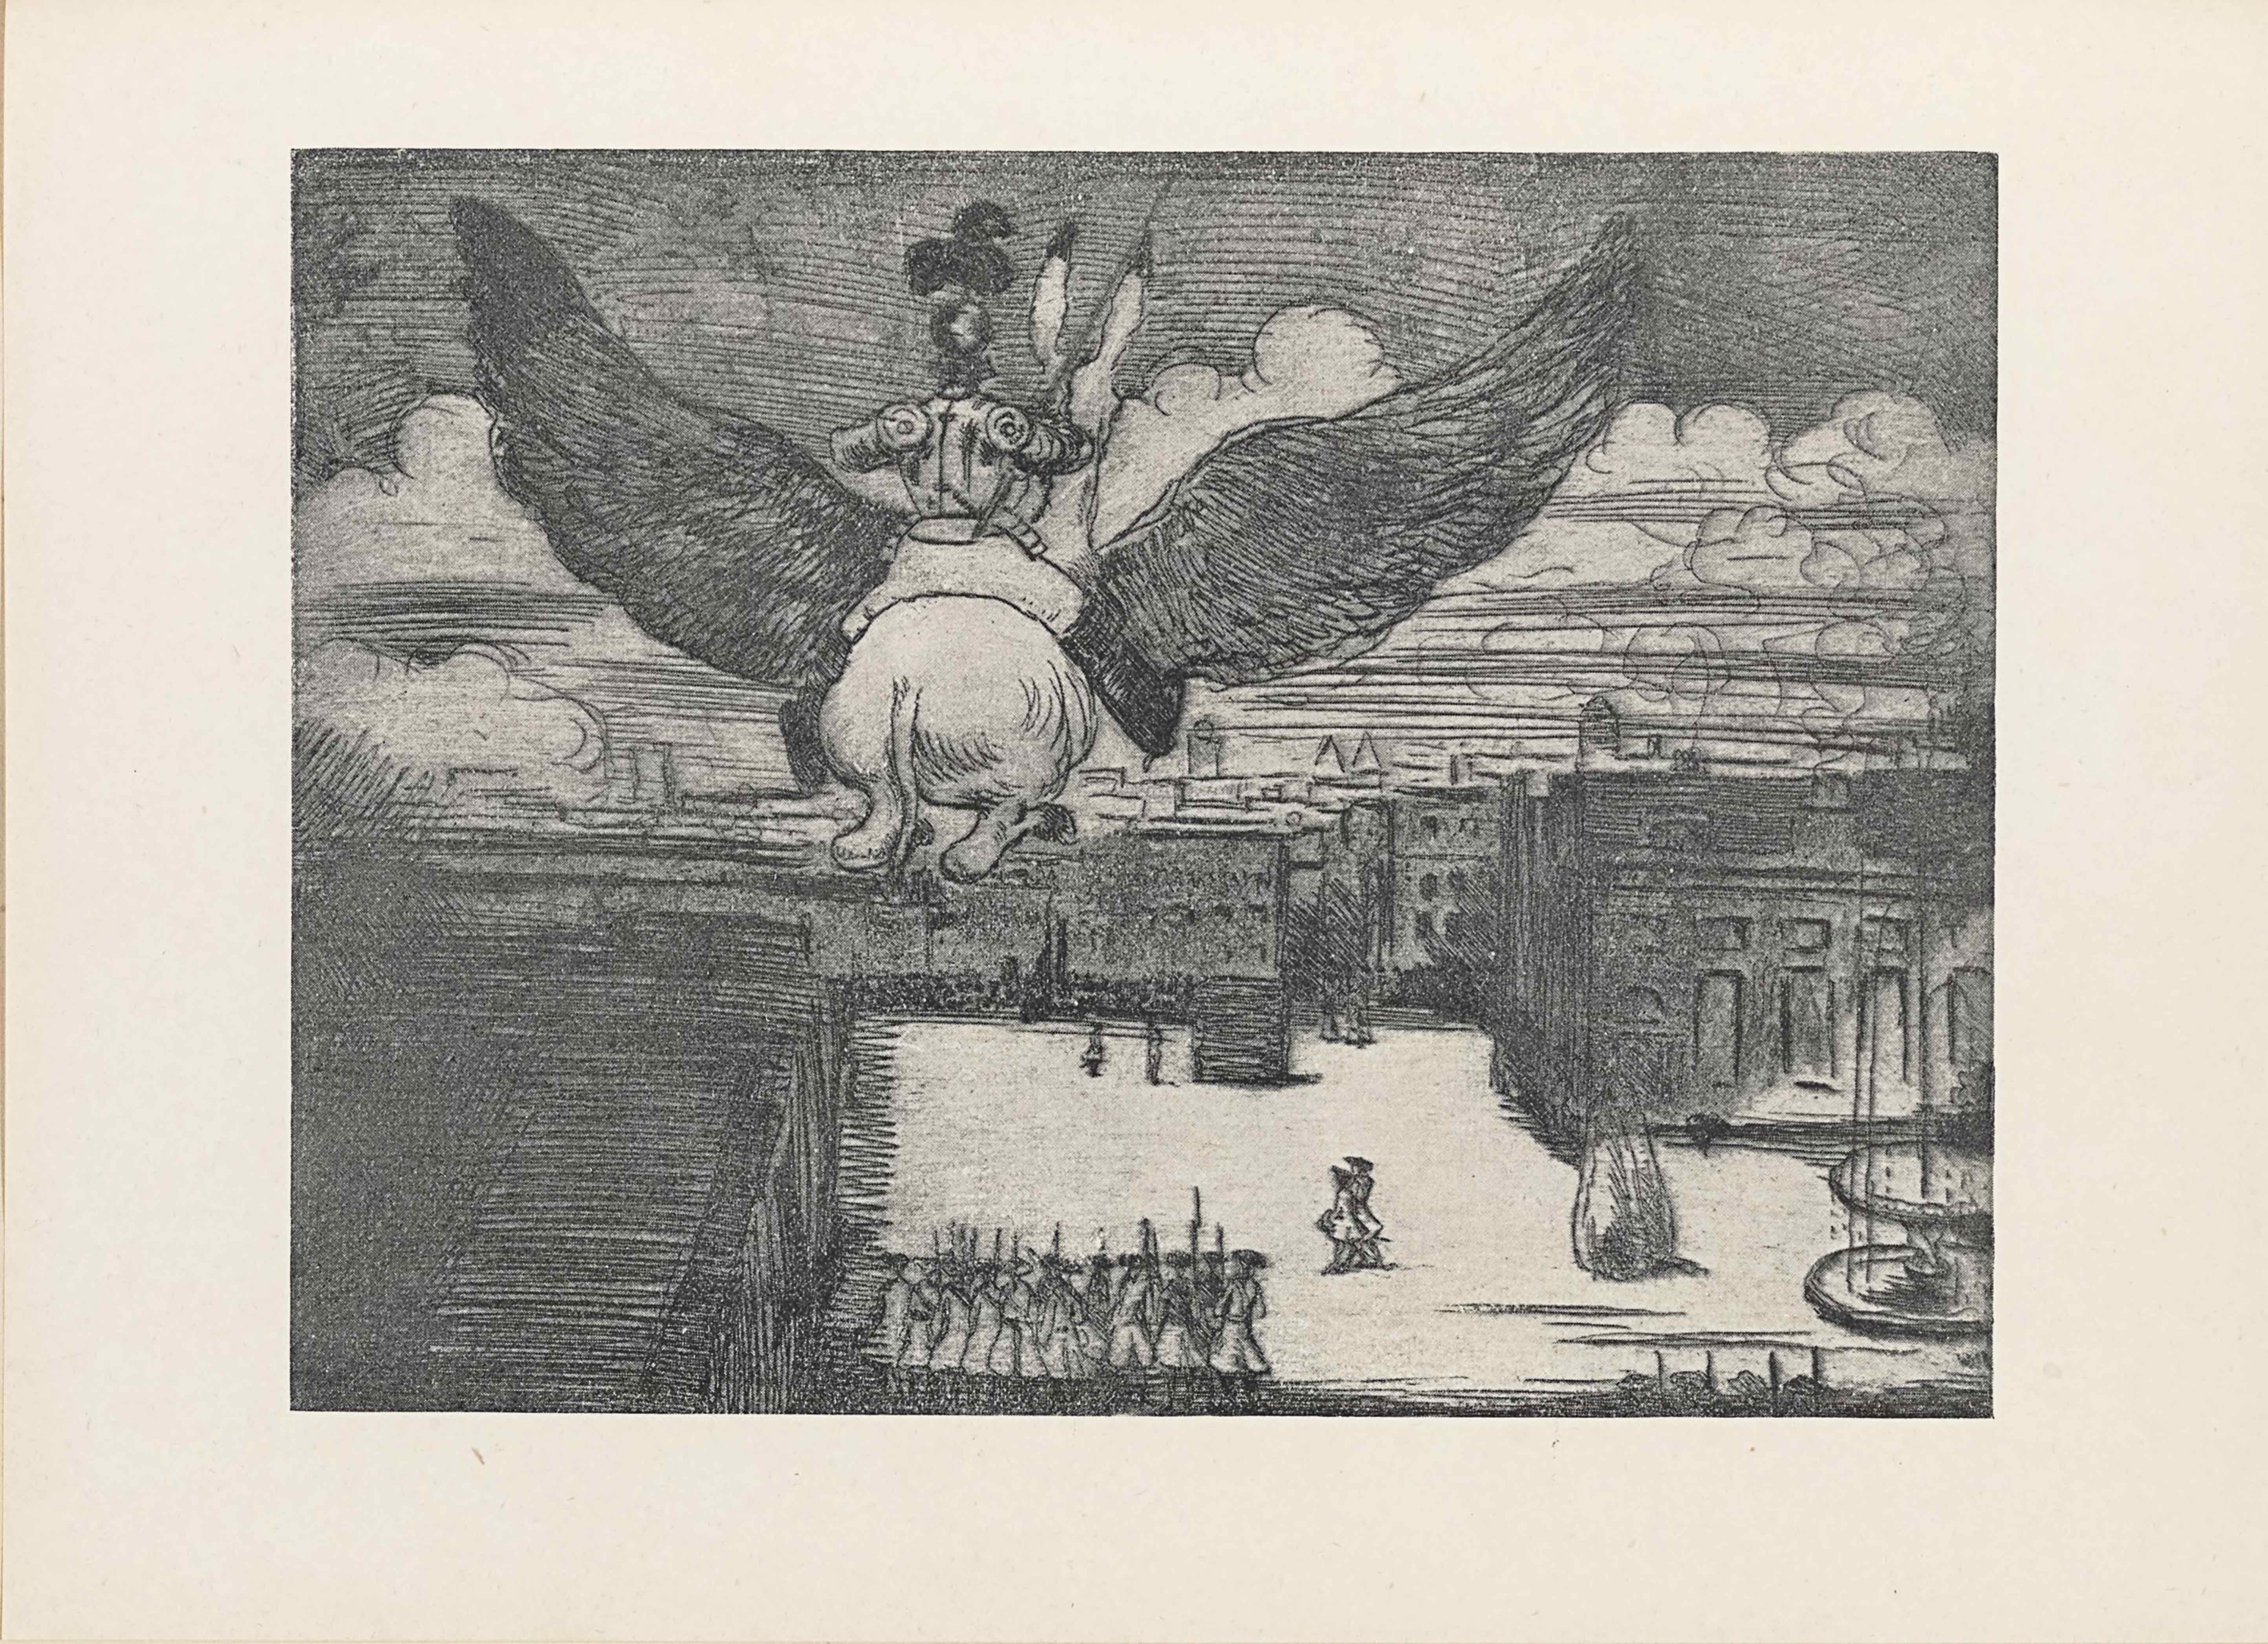 The half-tone reproduction of an etching is in landscape orientation. The image shows a flying donkey being ridden by a man in armour up in the air and over a guarded town square. In the top half of the page the flying donkey and armoured man are foregrounded and slightly to the left. The donkey and man are facing away from the viewer, and the donkey's backend is central. The donkey's legs are folded up towards his stomach and his tail hangs long behind him. He has wings attached to his sides that span three-quarters of the page in width. The wings are feathered and alike eagle wings that arc upwards. The man sitting on the donkey has one leg hanging over either side of the donkey's body and is wearing knee-high boots with pants. On the man's top half he wears armour that covers his torso, shoulder, arms, and head: specifically a tasset, fauld, plackart, breastplate, pauldron, rerebrace, couter, vambrace, gauntlet, gorget, helm, and largely plumed comb. The knight also holds a long spear vertically tucked under his right arm. The donkey's tall ears are tipped in black and stick out from behind the man. They are flying above a backgrounded city that fills the bottom half of the page. In the bottom left corner is the roof of a large building. In the central bottom of the page there are about ten men standing in a row within the town square surrounded by two-storey buildings. The group of men are facing away from the viewer and dressed in robes with a soldier cap and a bayonet hung on a sash across their torsos. To the right of the group are two soldiers similarly dressed to the others and walking diagonally and towards the left away from the pack. In the bottom right corner is a large stone slab, perhaps a monument, and to the right of it sits a fountain. Behind the fountain is a large building that rises up to the skyline. To the left of that building and set deeper into the background is a group of buildings that meld into one another and form the far side of the town square. The roofs of the buildings in the distance have many chimneys and smoke plumes out of them into the cloudy sky above. In about the middle of the square is a large box taller than the two men standing to the left of it dressed in the same soldier clothing as the rest of the soldiers. Against the wall of the buildings in the distance seems to be a large group of indiscriminate people watching what is happening at the box. It might be a hanging happening on the opposite side of the box, which is not visible to the viewer.